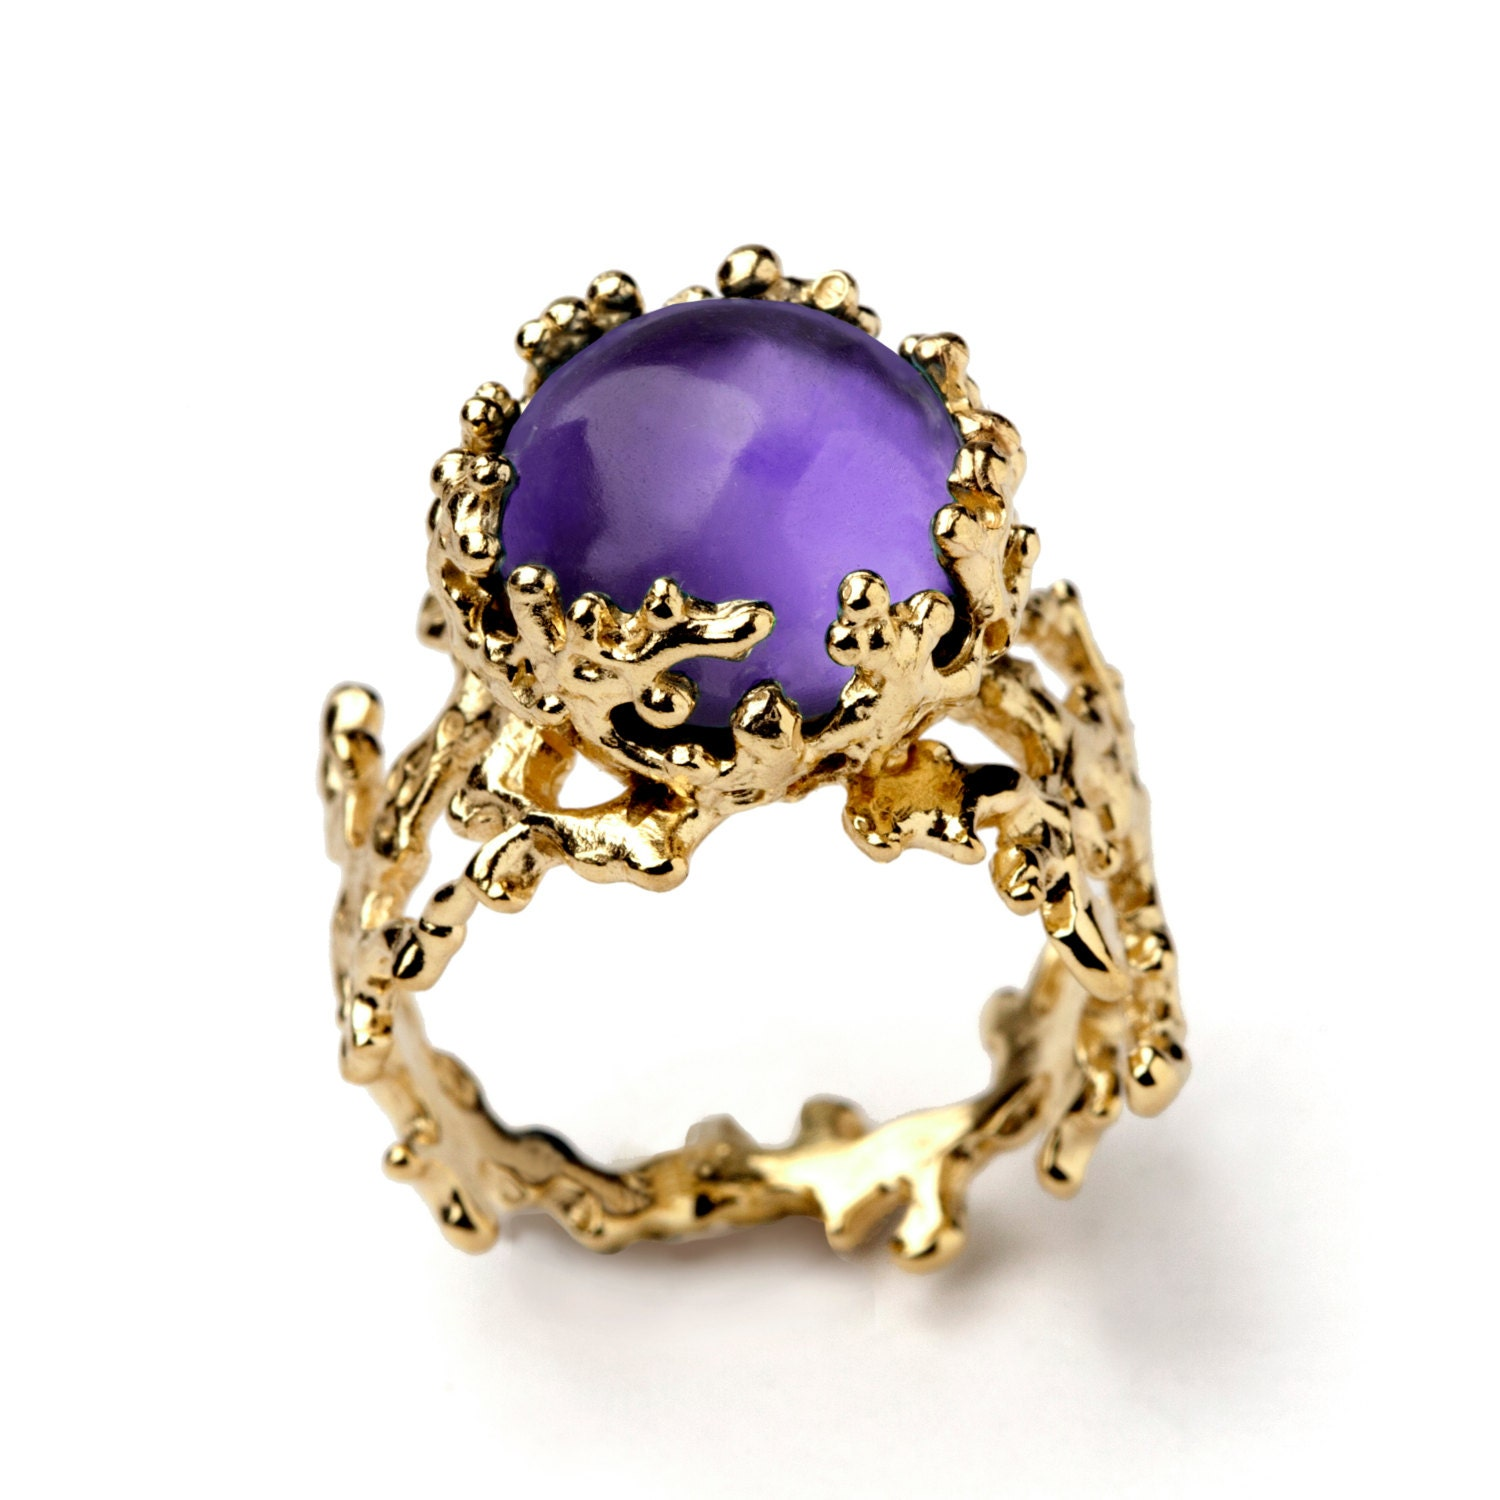 Cushion Cut Amethyst Ring Gold